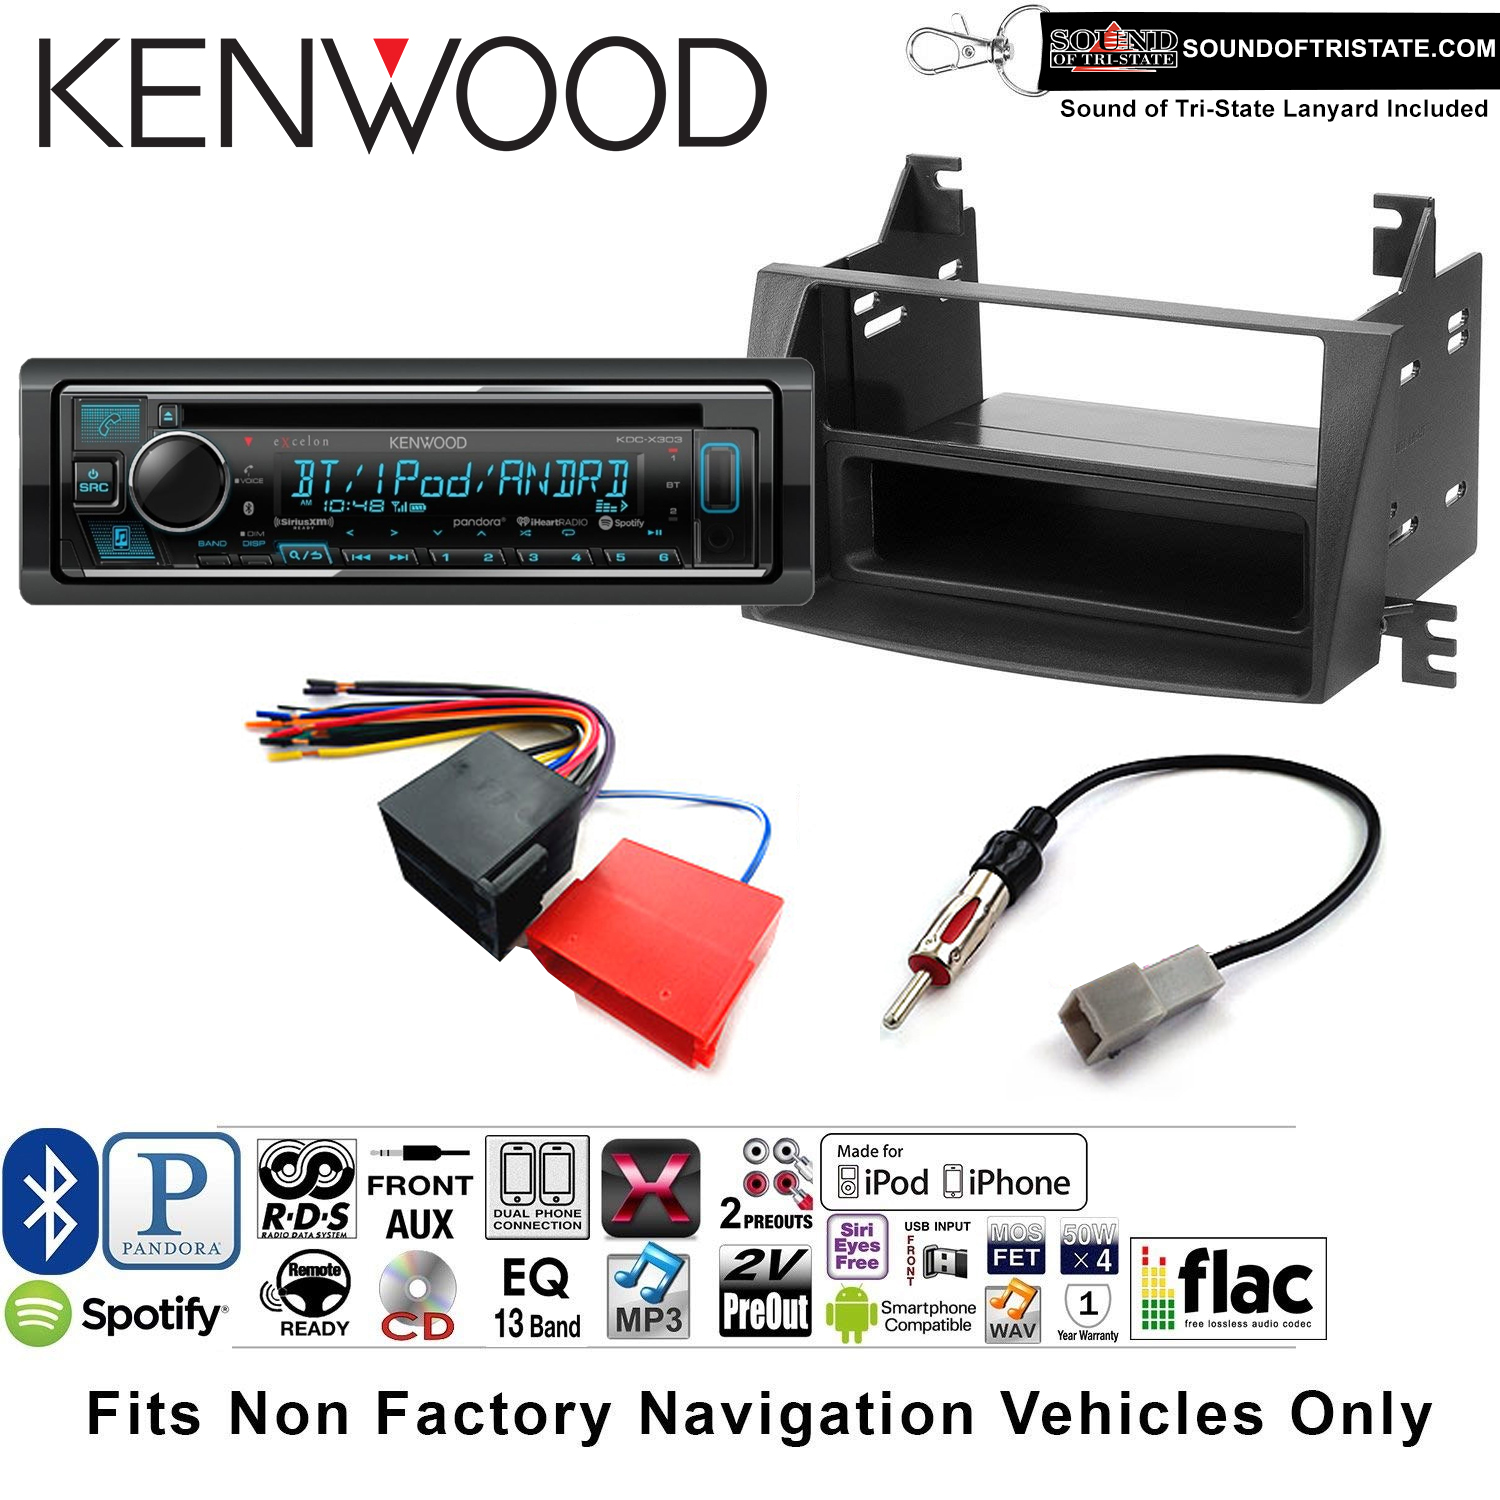 Kenwood KDCX303 Double Din Radio Install Kit with Bluetooth, CD Player, USB/AUX Fits 2009-2010 Hyundai Sonata(NON AMPLIFIED SYSTEM) and a SOTS lanyard included